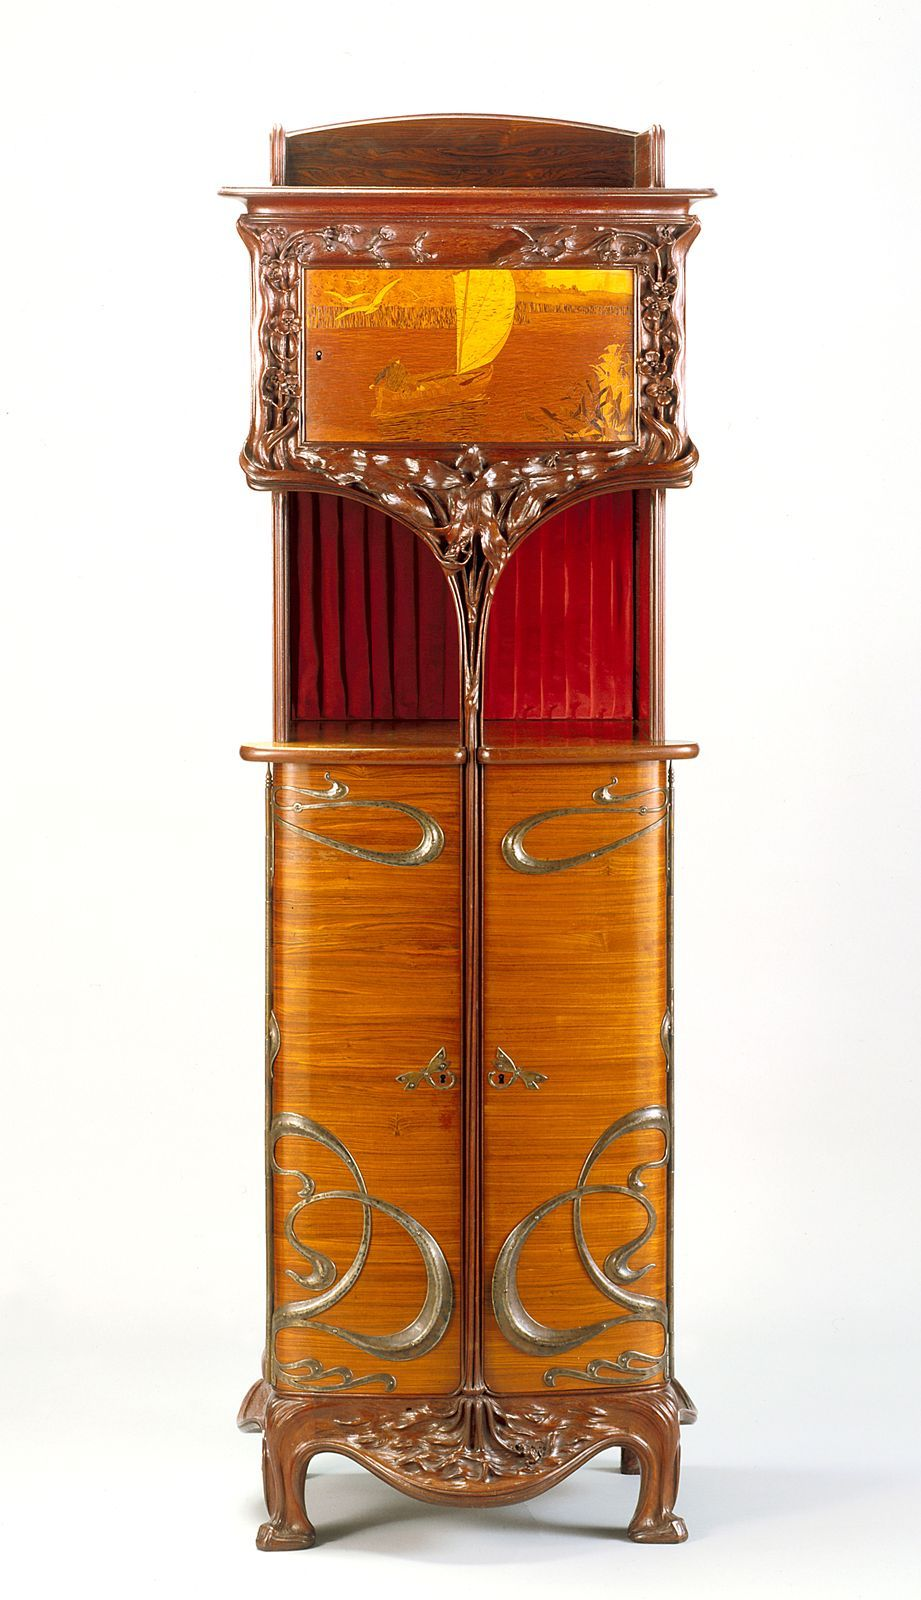 Antique furniture - Cabinet / Louis Majorelle / C.1900 / Kingwood, Mahogany, Amaranth